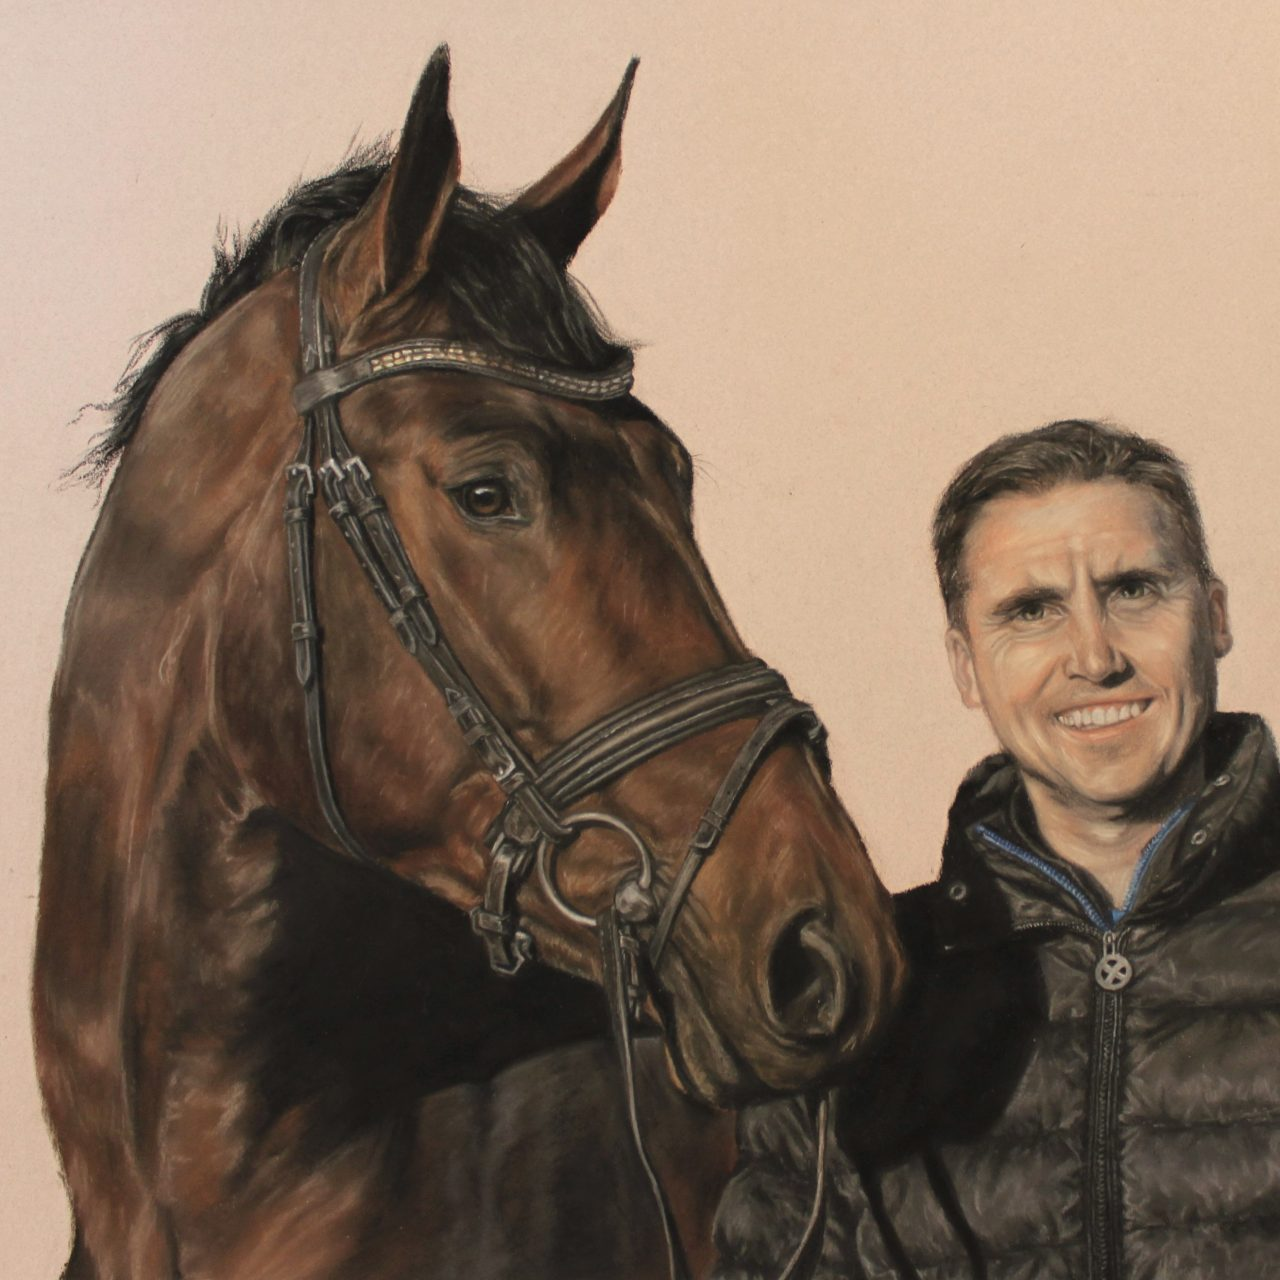 https://www.customhorseportraits.com/wp-content/uploads/Andreas-Portrait-revised-1-site-1-e1555105714725-1280x1280.jpg